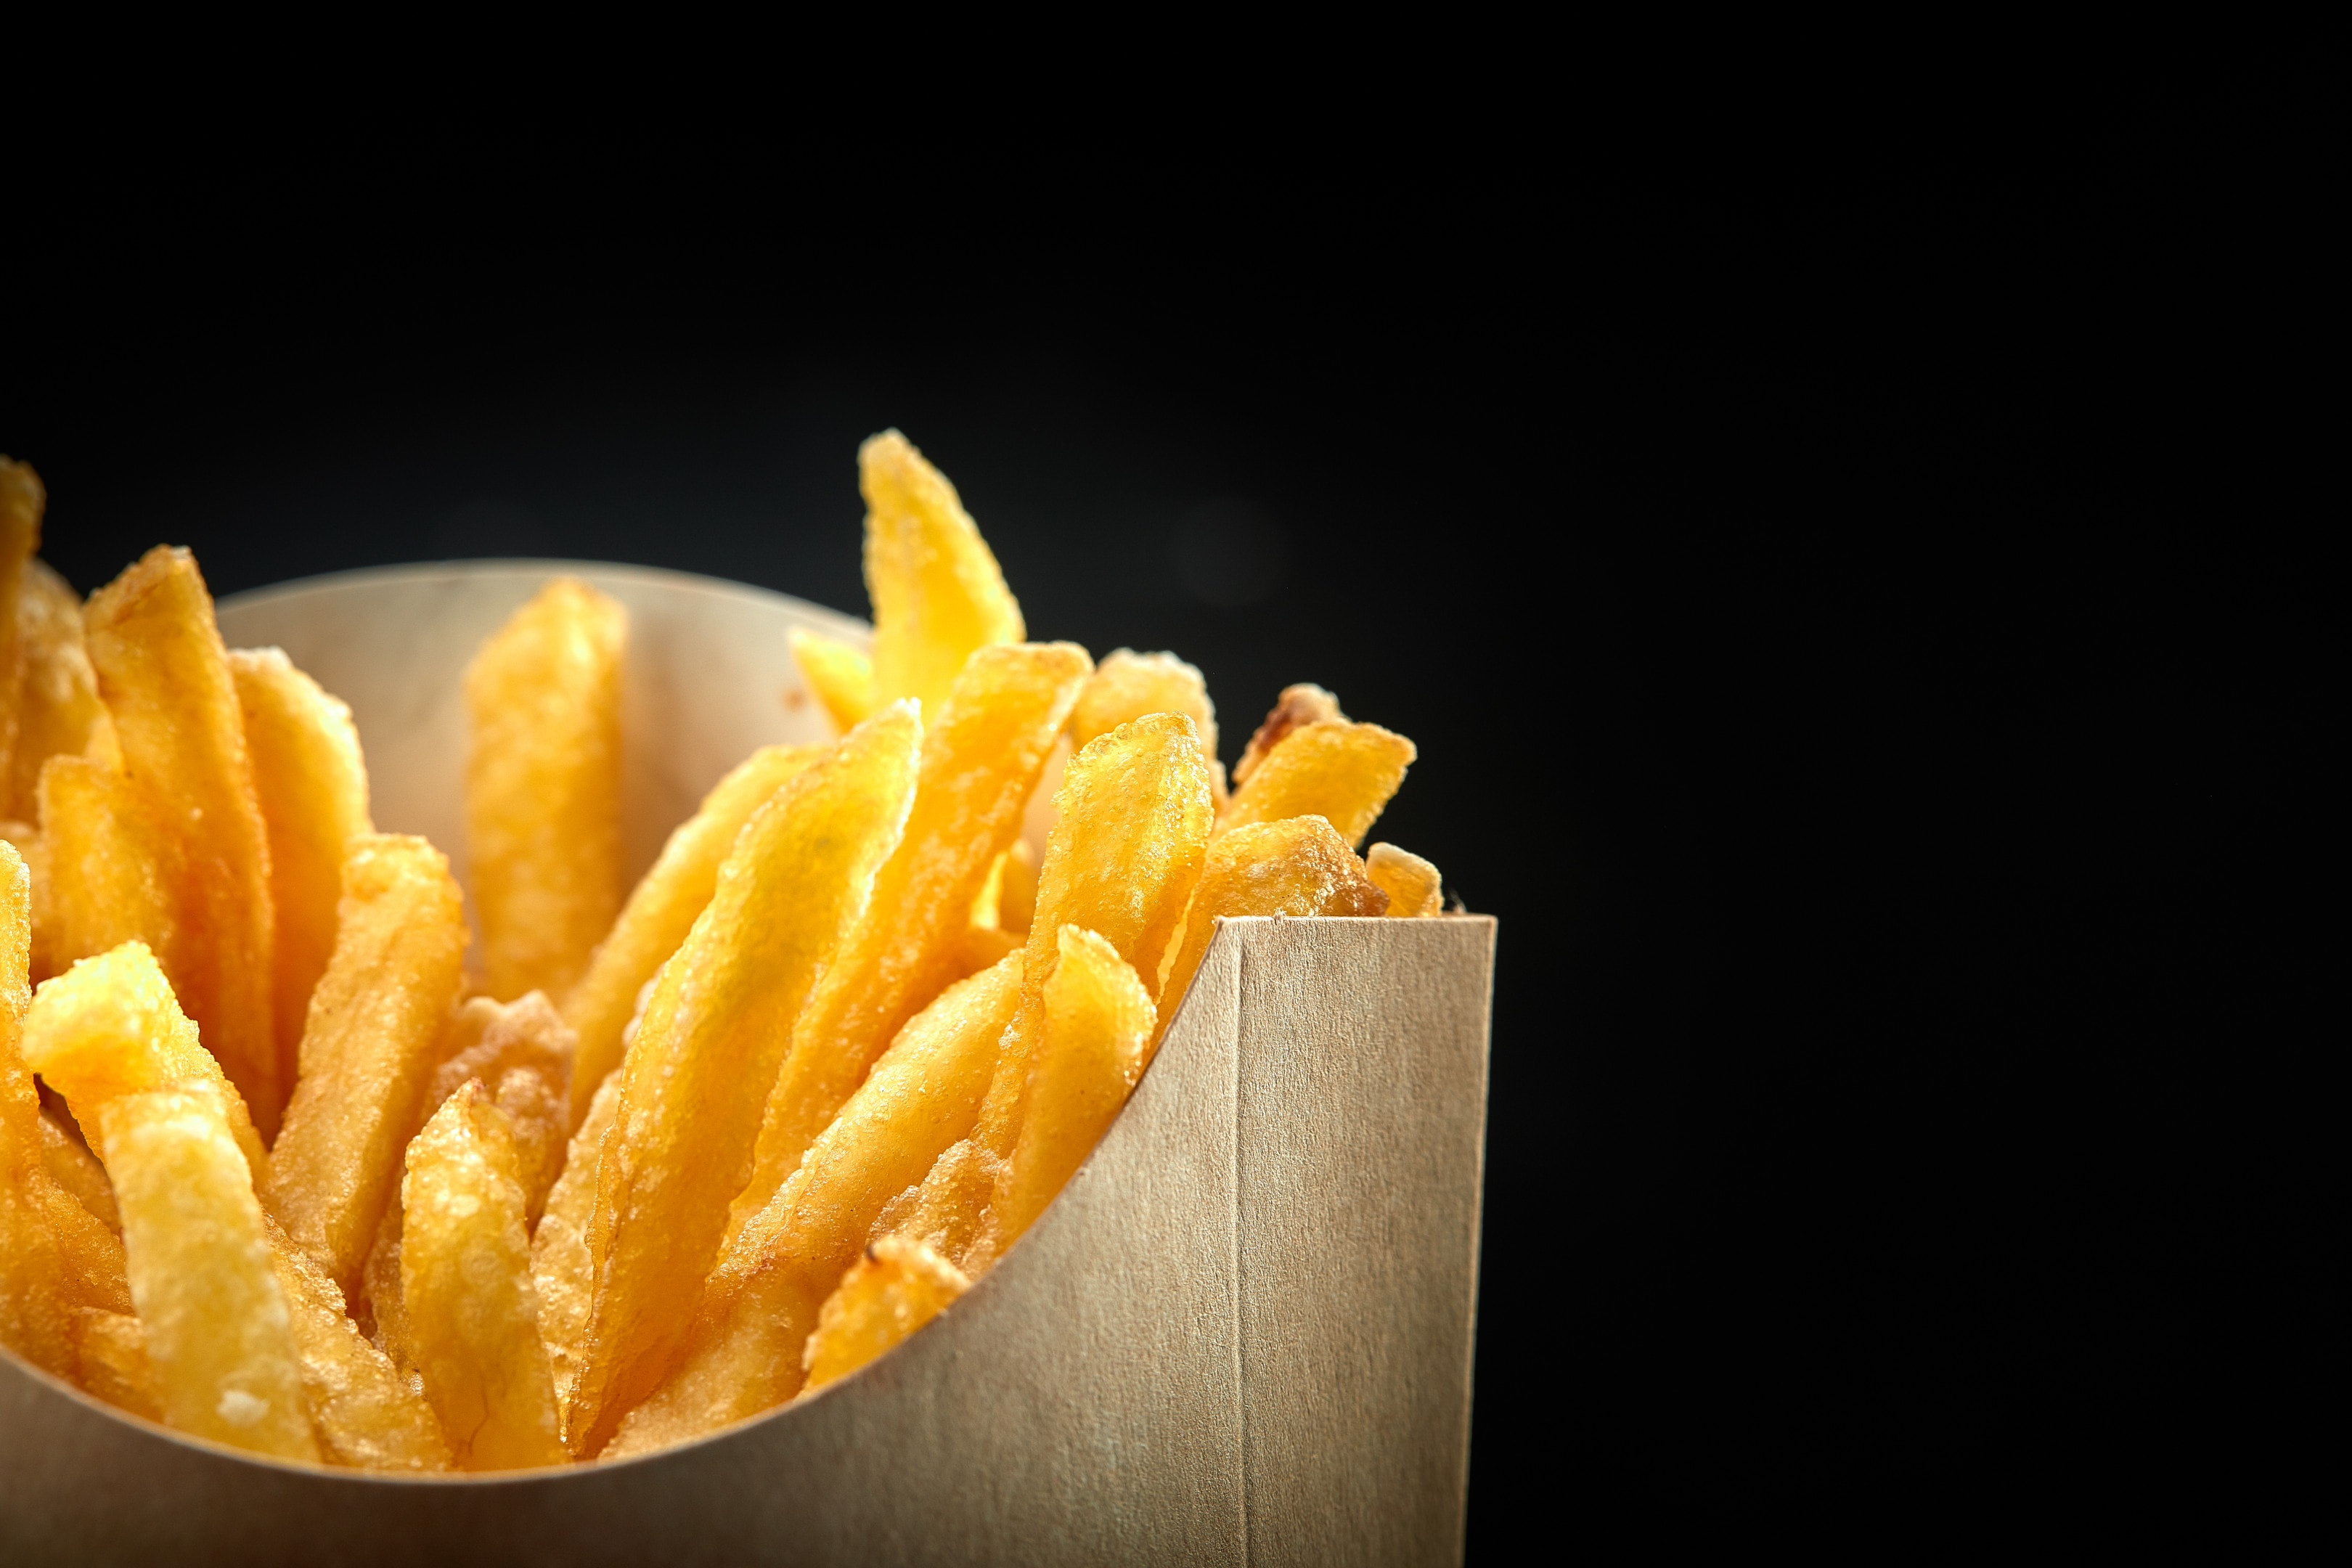 French fries in paper bag on black background